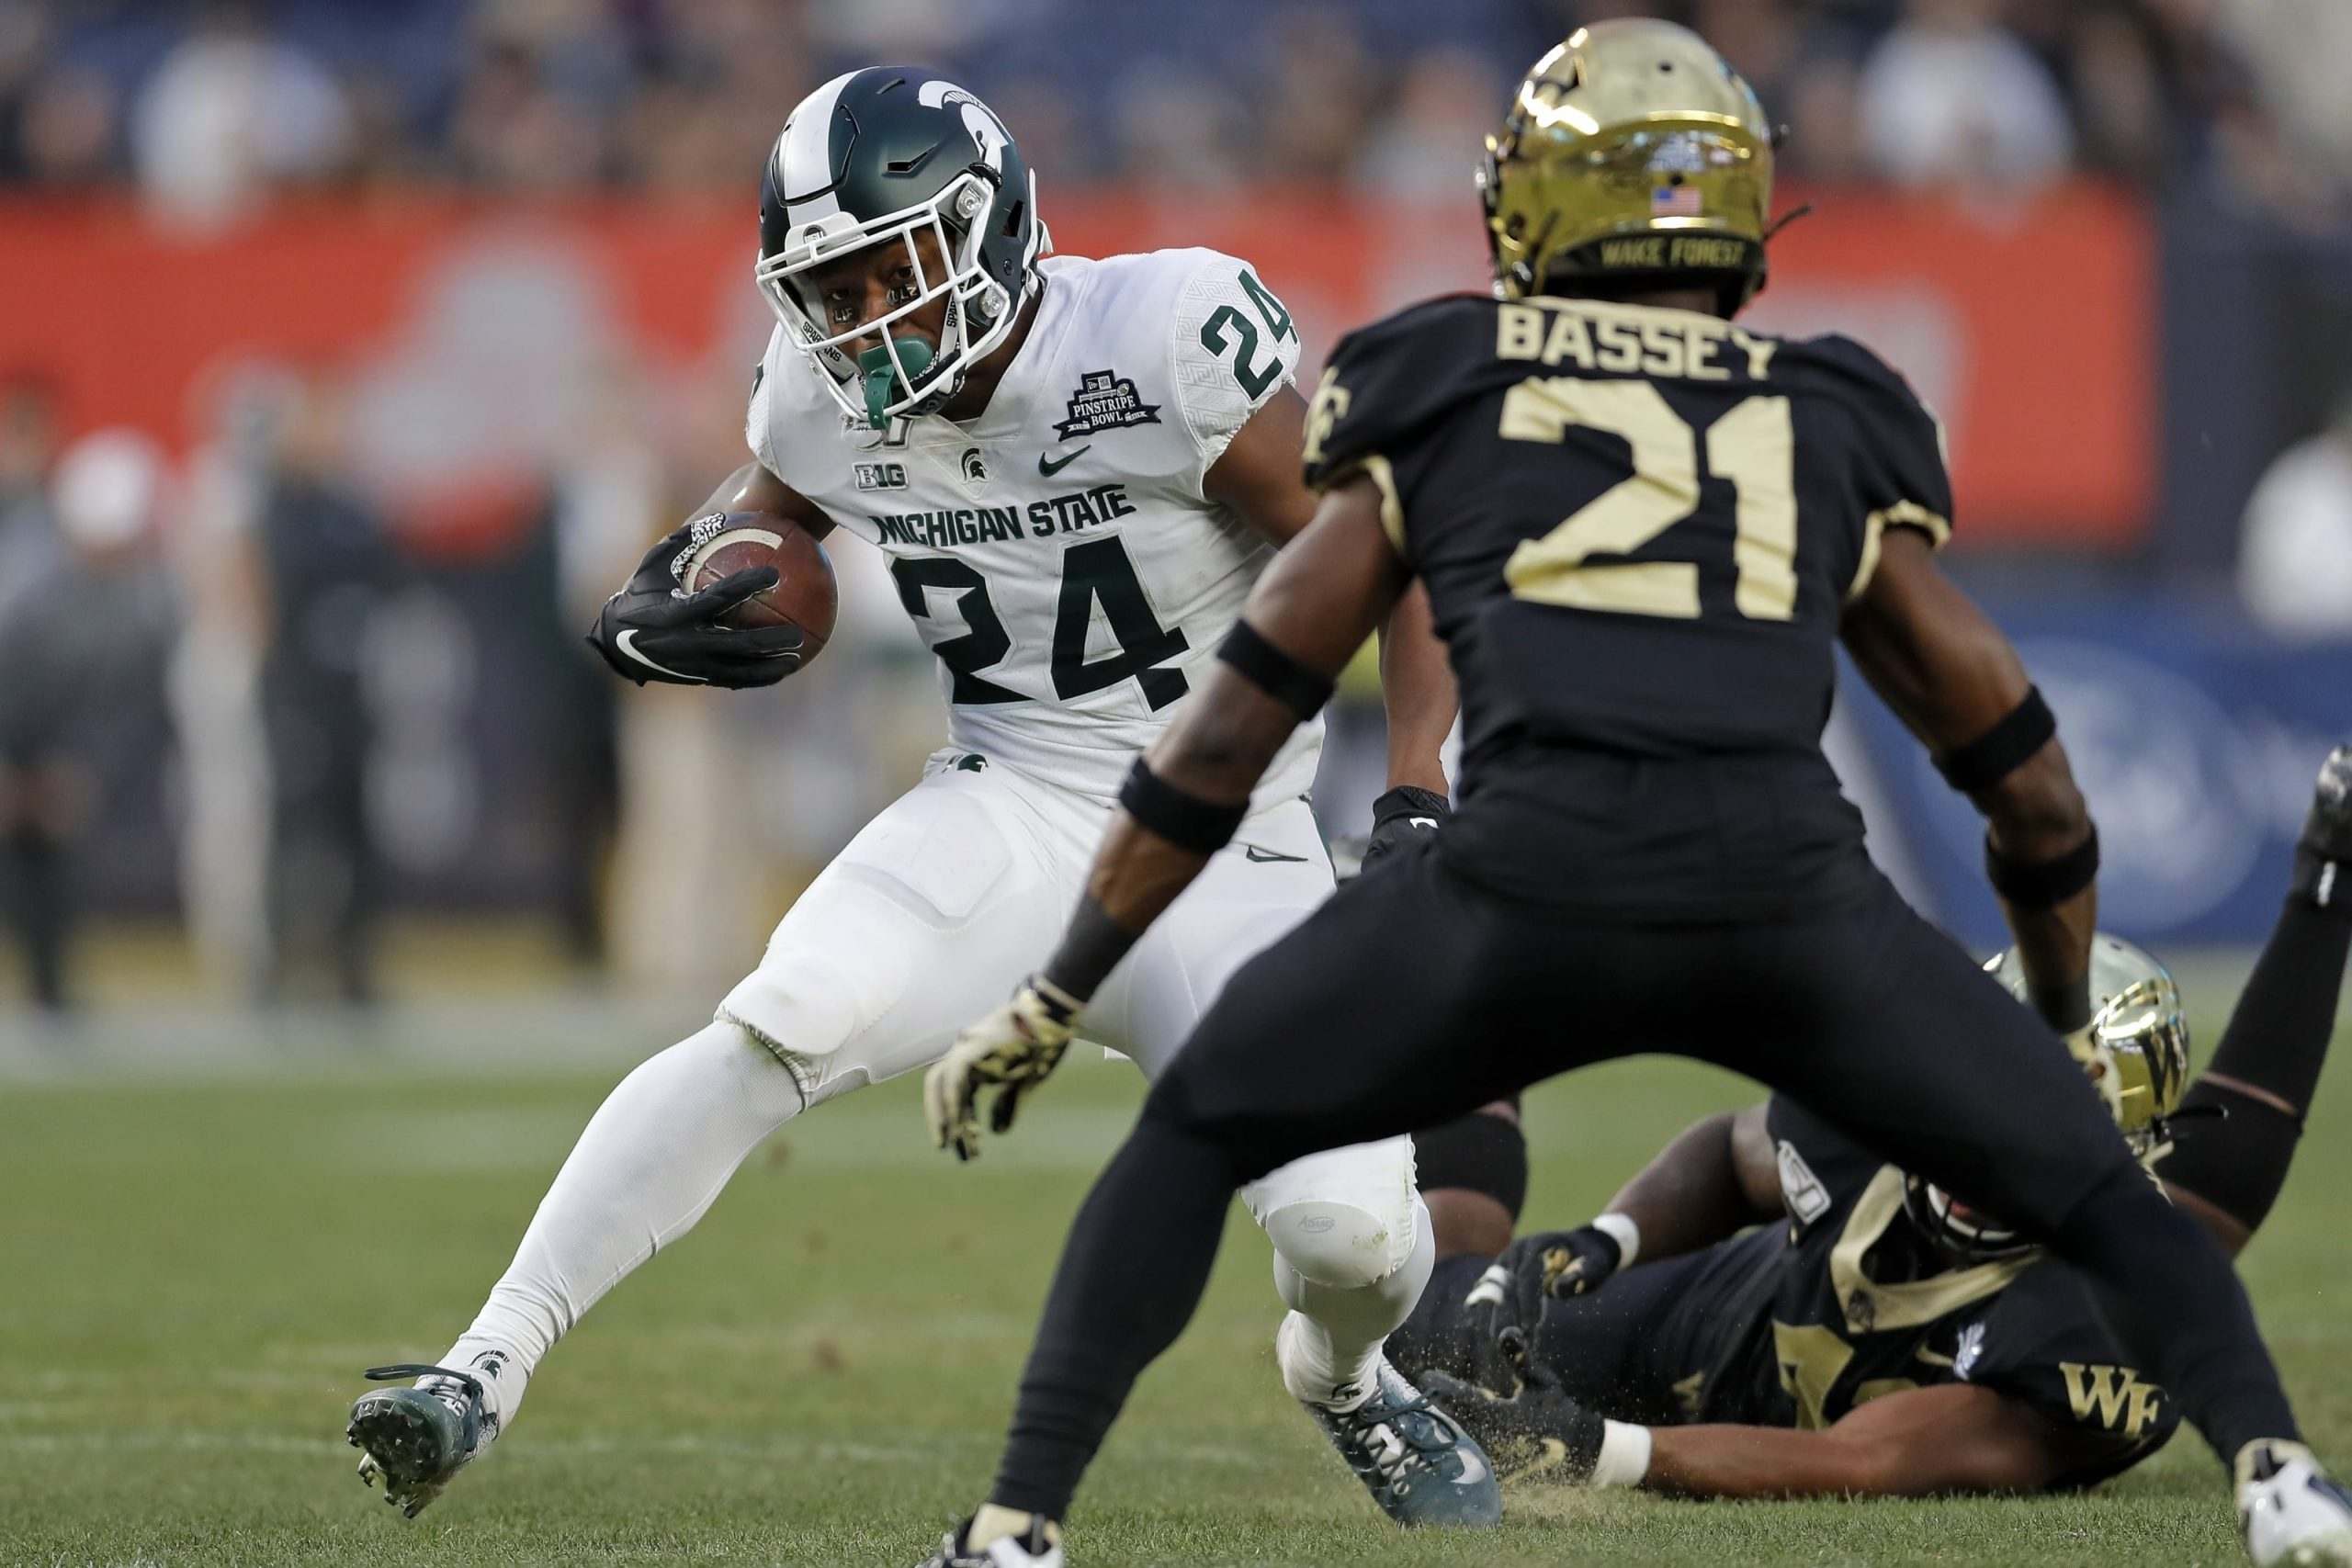 Michigan State Football: 3 Predictions For The 2020 Season - Page 2-Rut Predictions For Michigan 2021